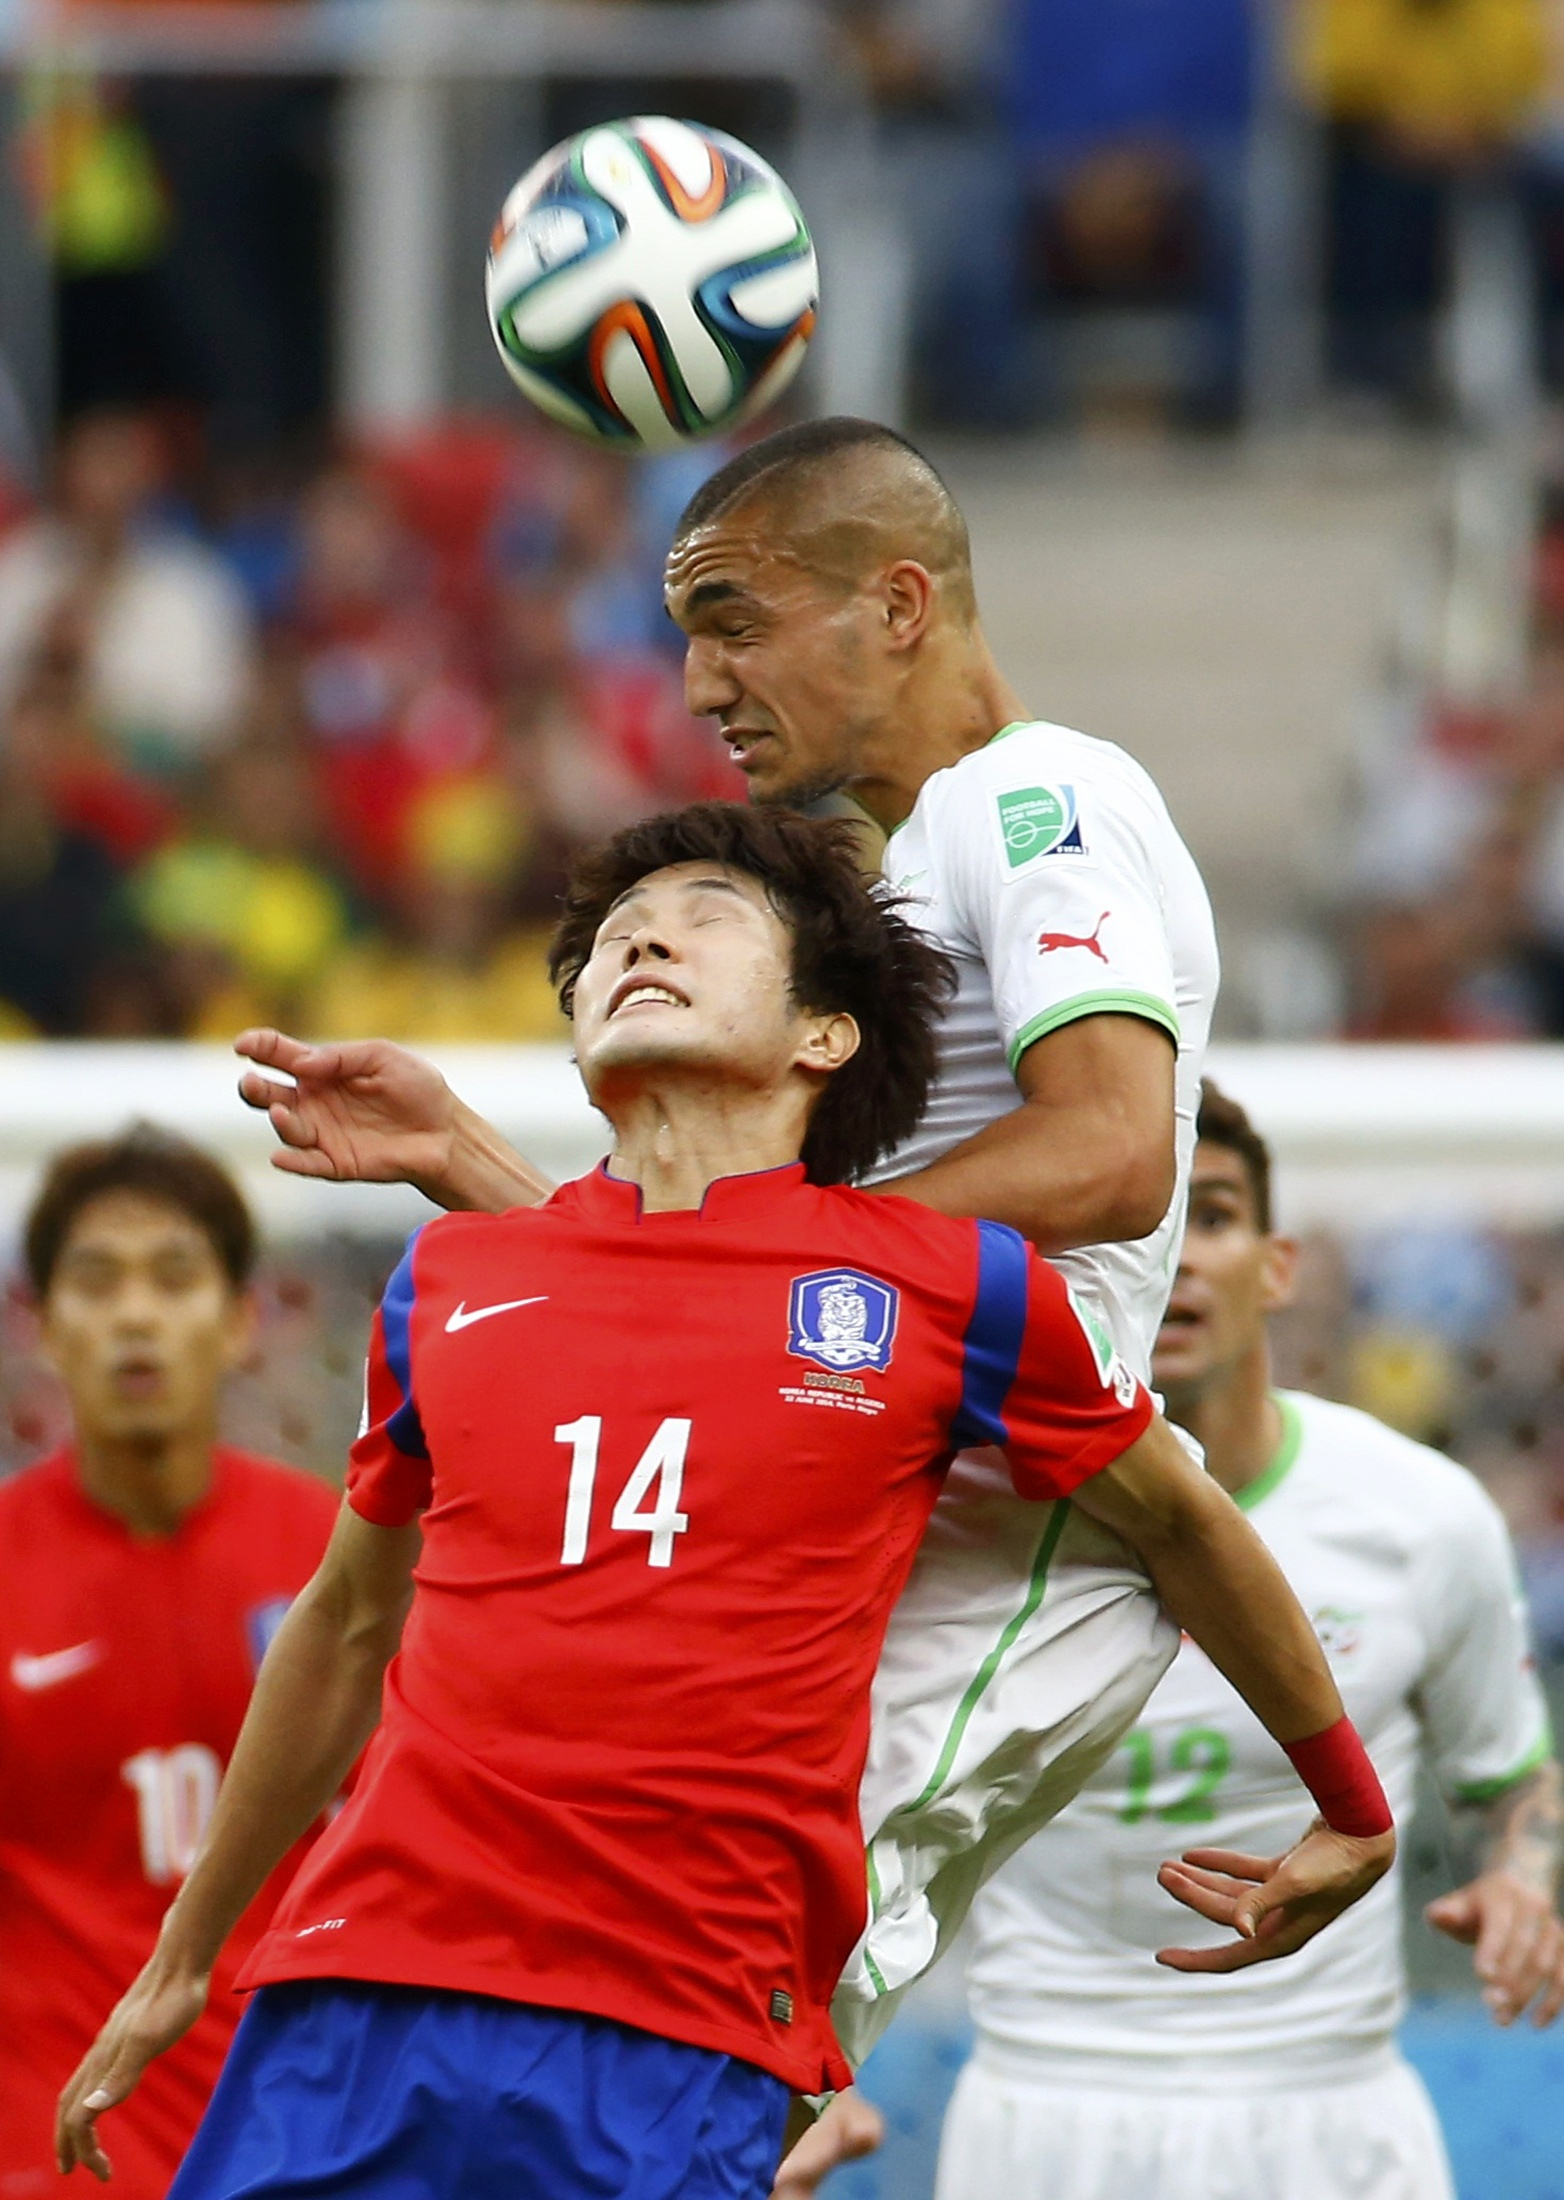 Nabil Bentaleb battles in the air with Han Kook-young. Picture: Action Images